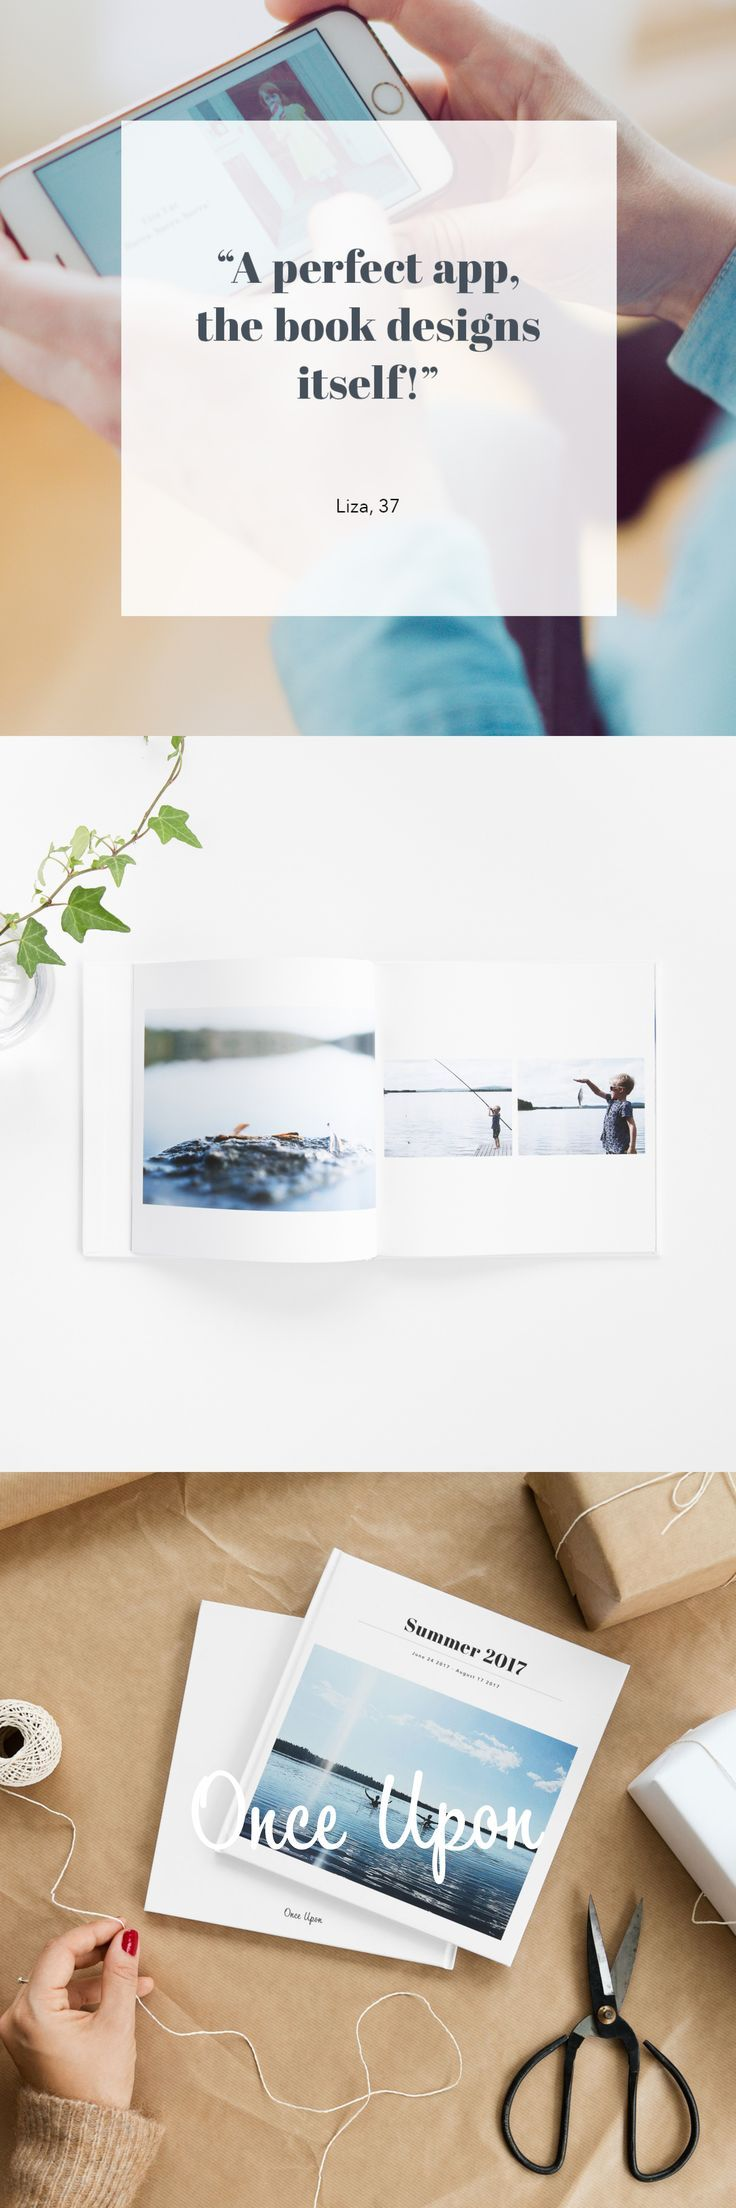 Once Upon app makes it easy to create designed photo books. Our books come in two different sizes with hard or soft cover. Scandinavian design, printed in Sweden. #MadeInSweden